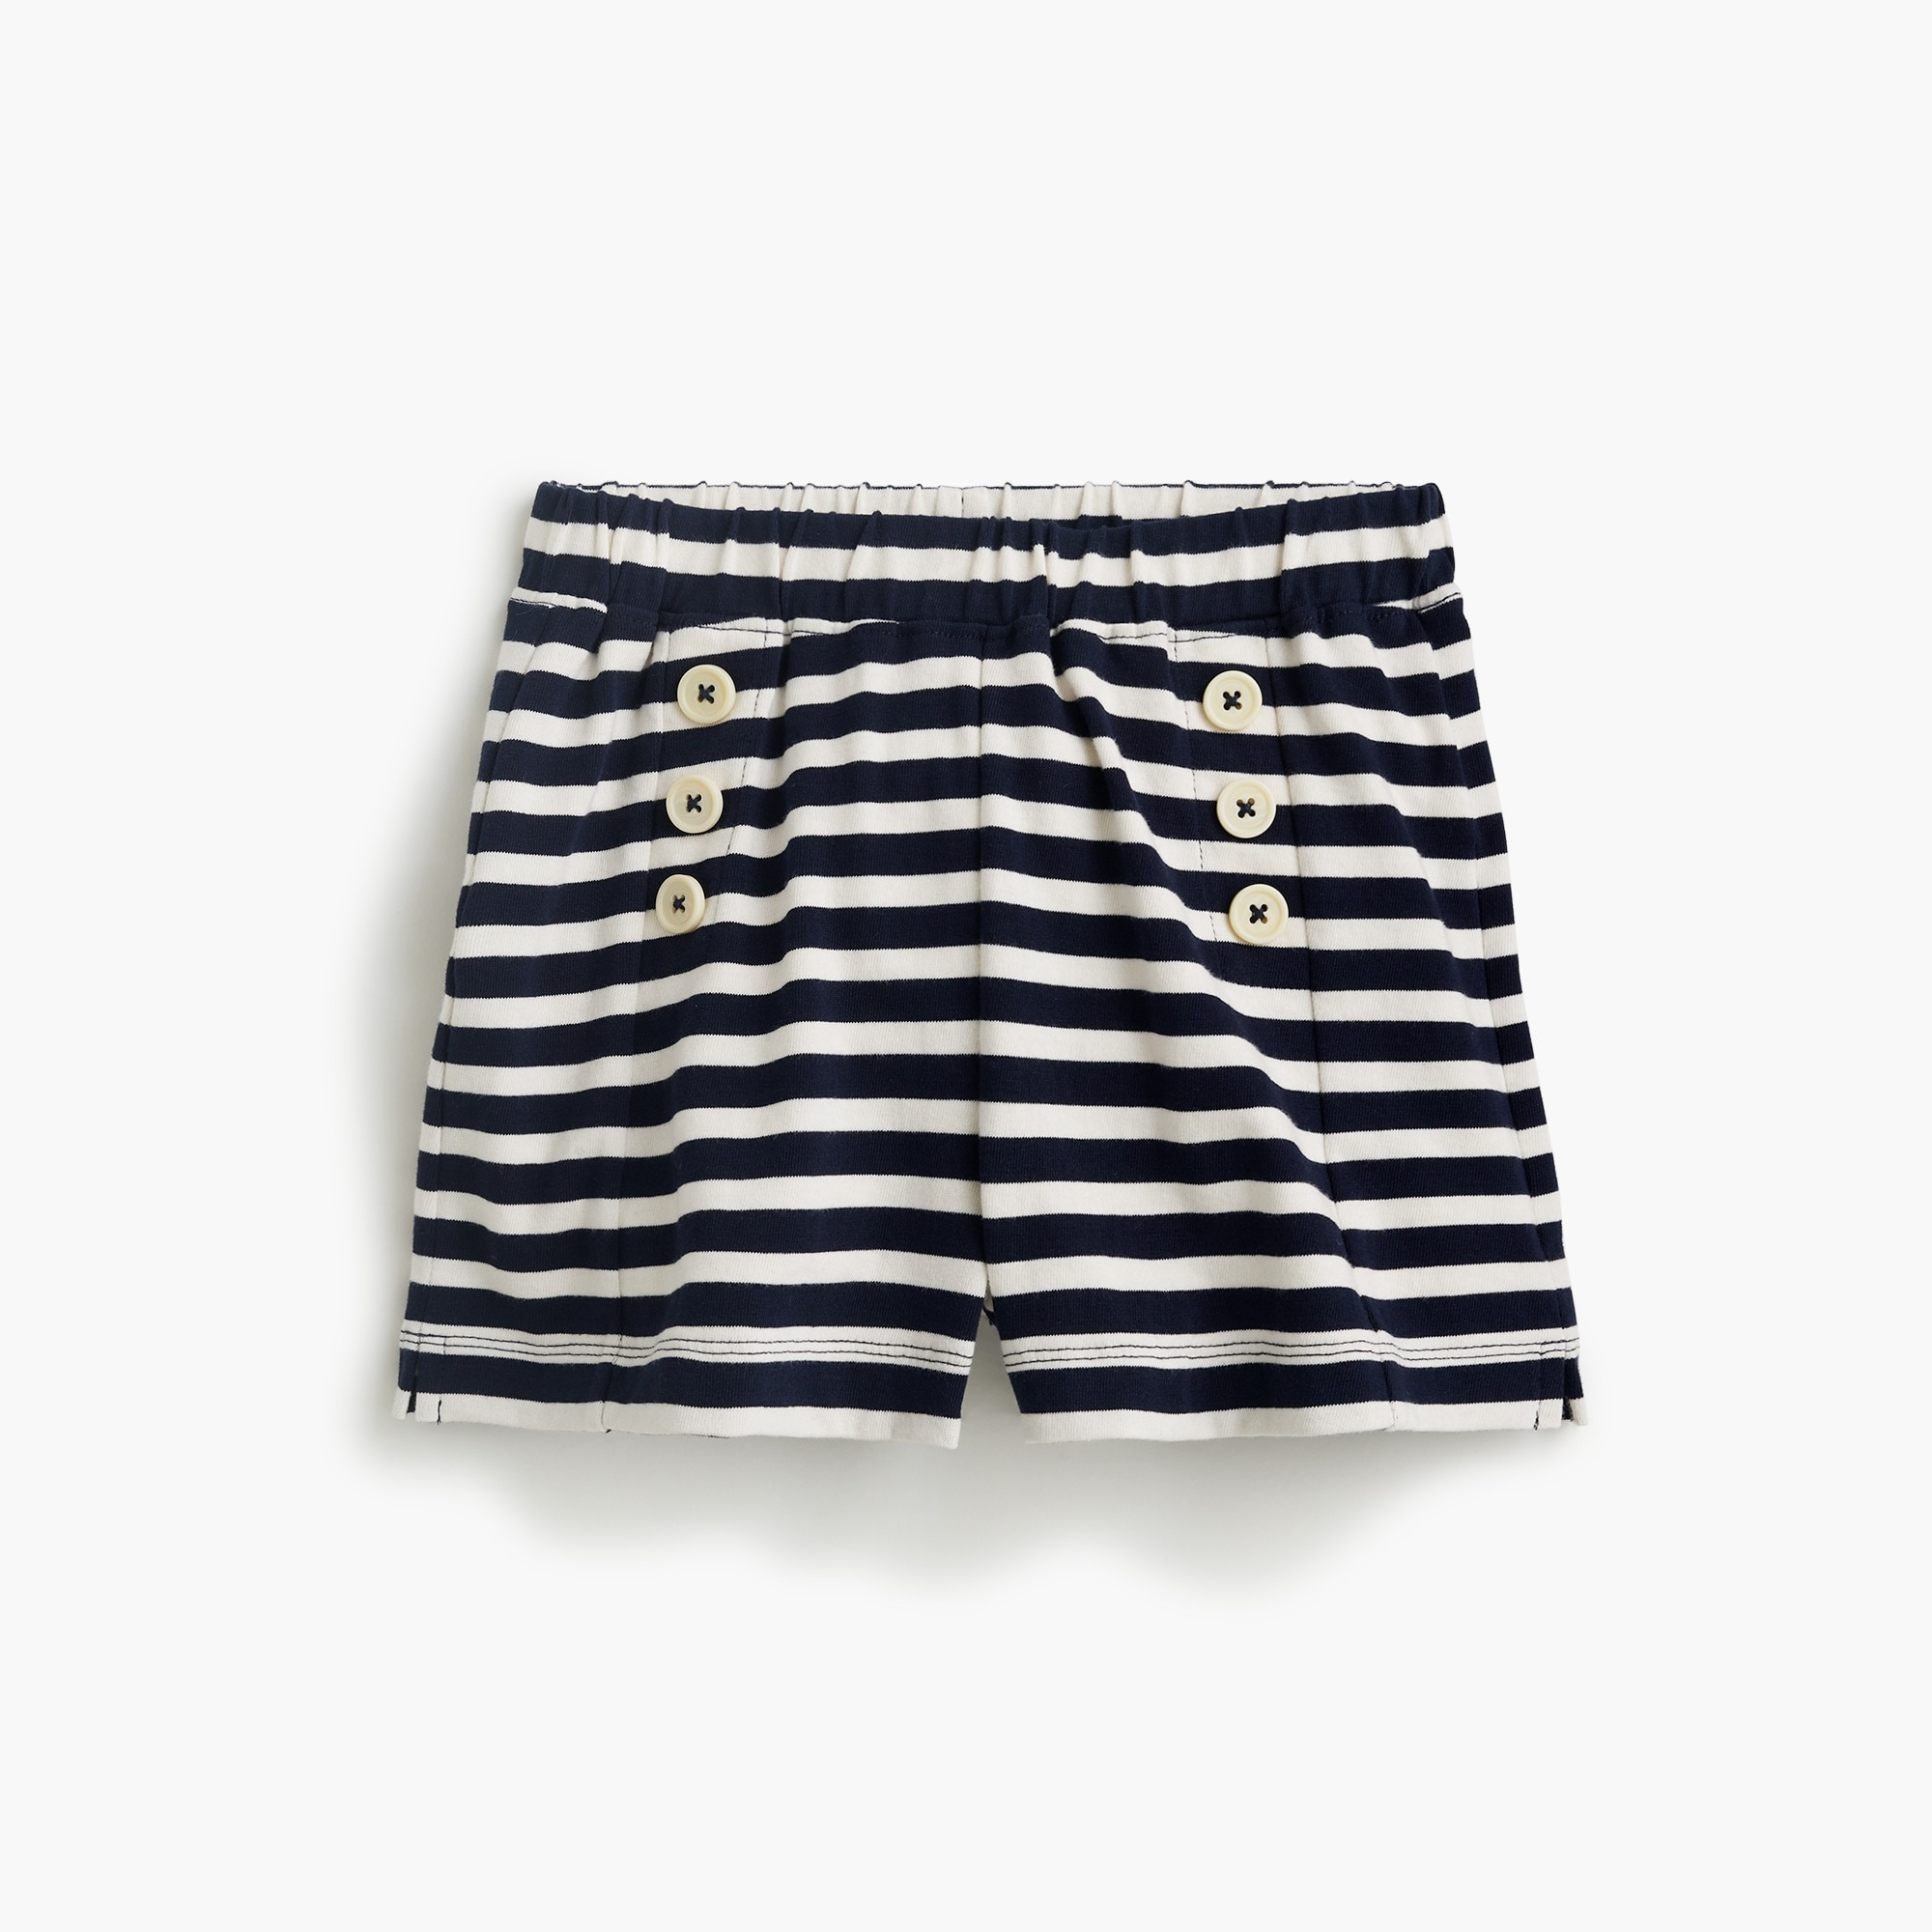 Image 1 for Girls' sailor-style pull-on short in stripes